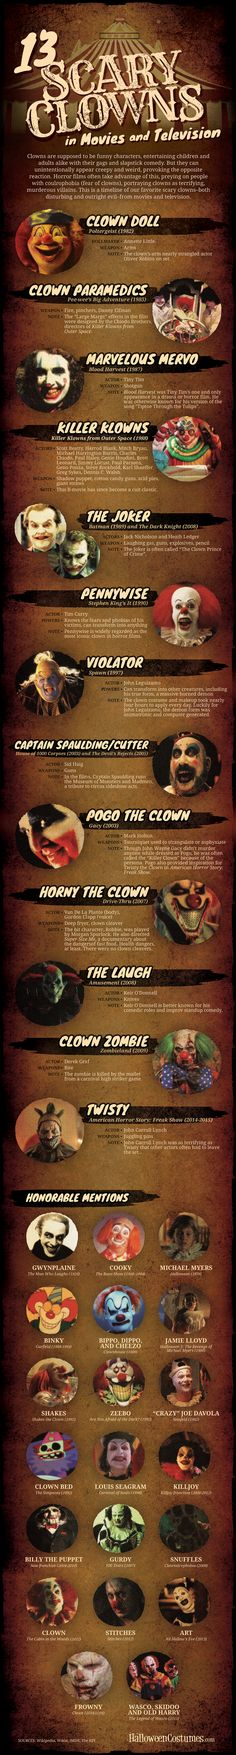 13-Scary-Clowns-Infographic.jpg (1000×7437)